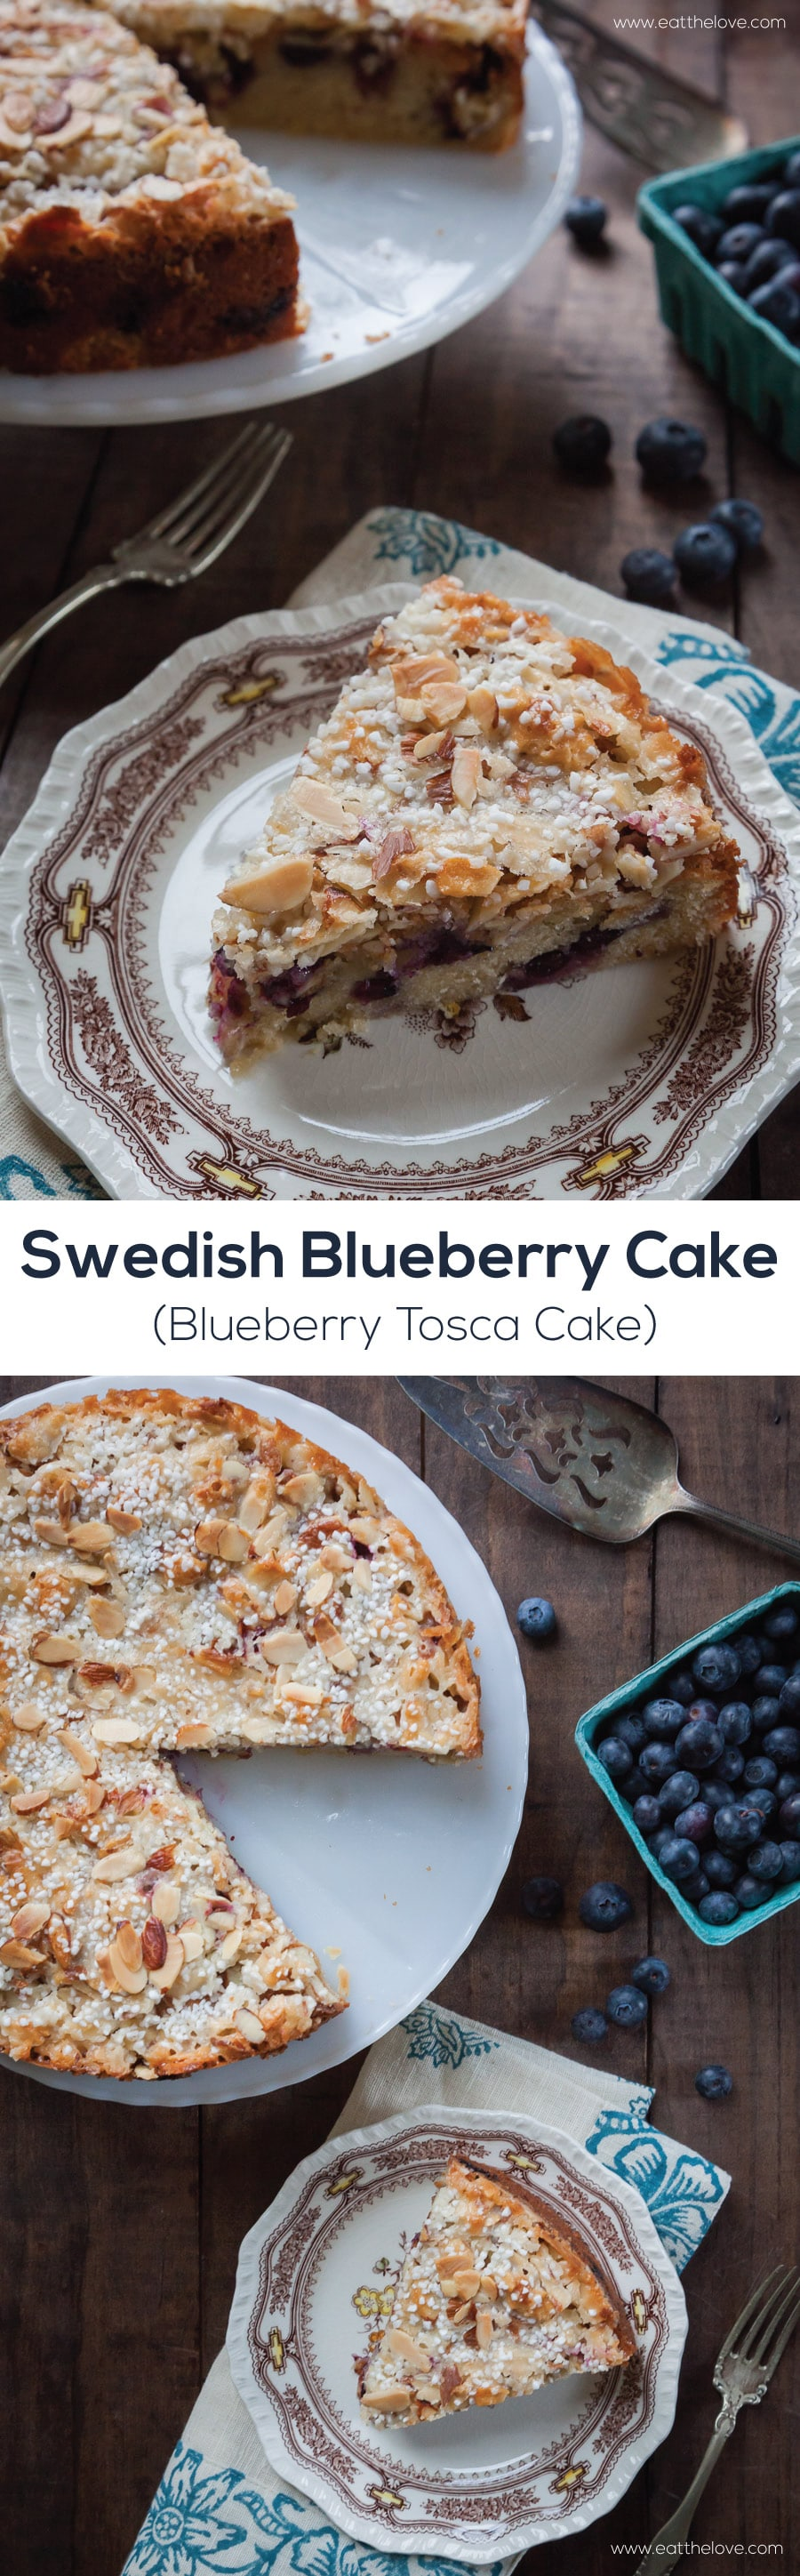 Swedish Blueberry Cake (Toscakaka aka, Blueberry Toska Cake). Photo and recipe by Irvin Lin